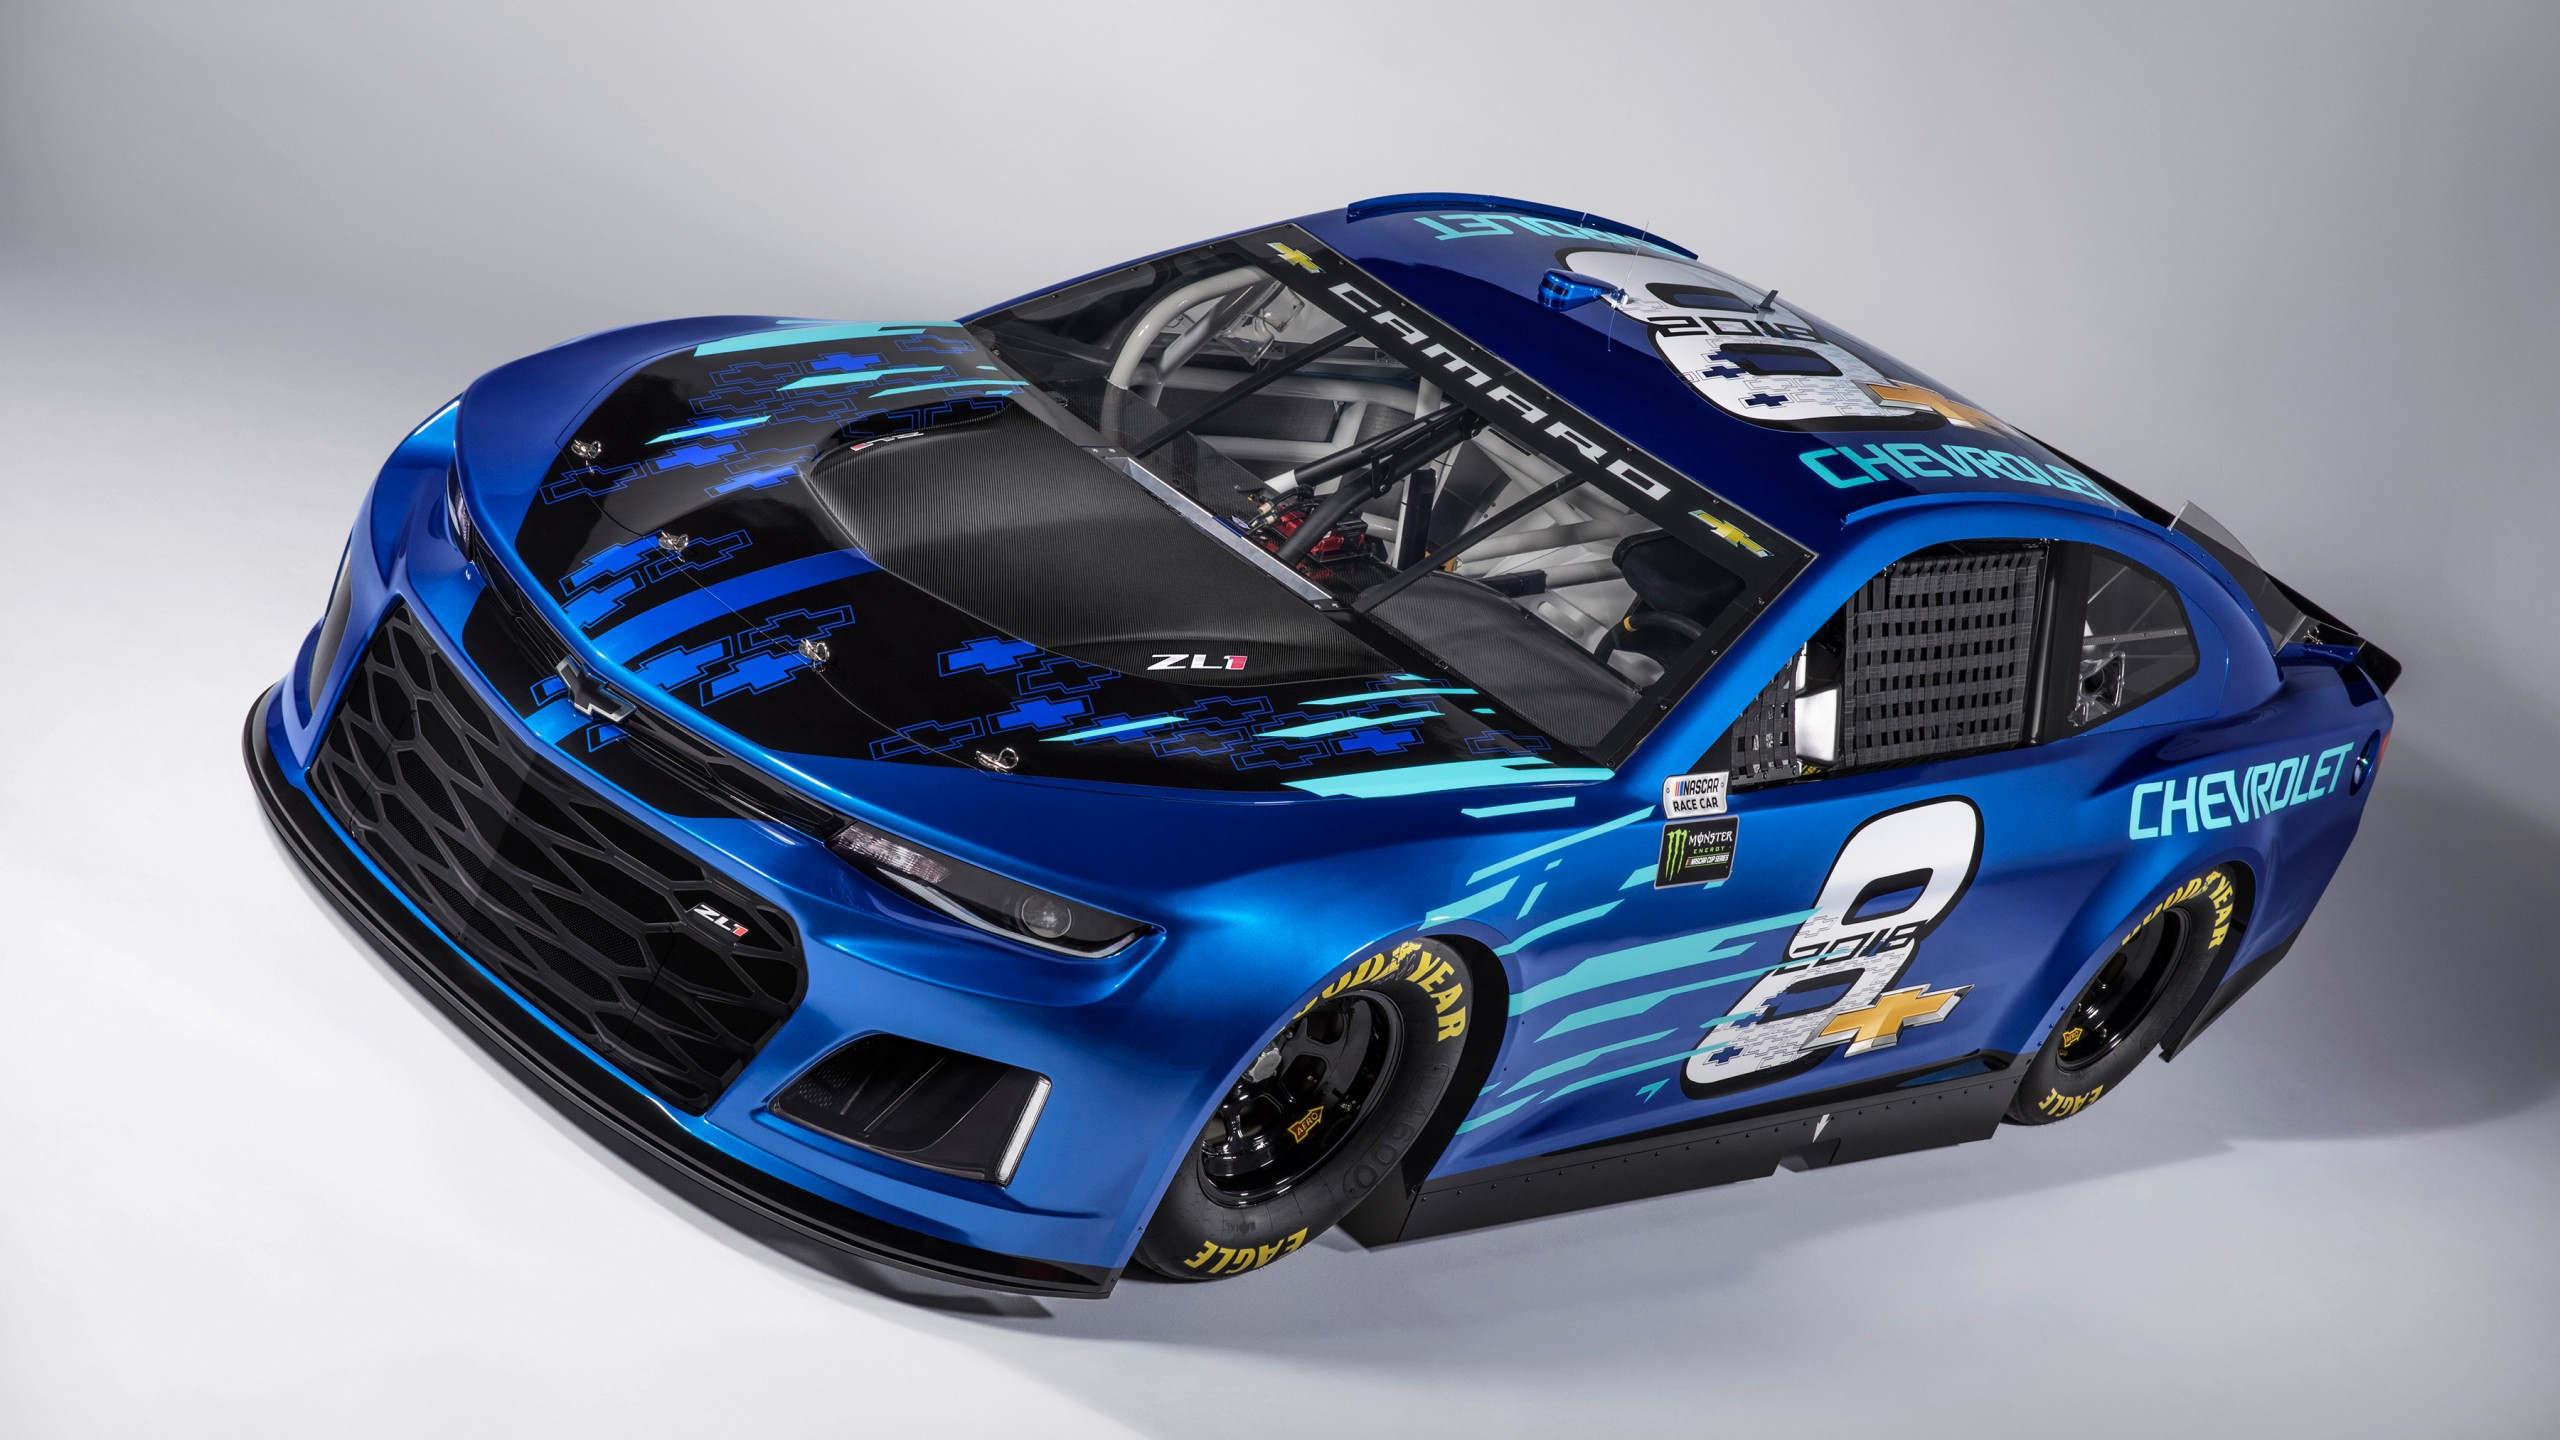 High Country Chevy >> Chevrolet Camaro ZL1 NASCAR Race Car 2018 Wallpaper | HD ...